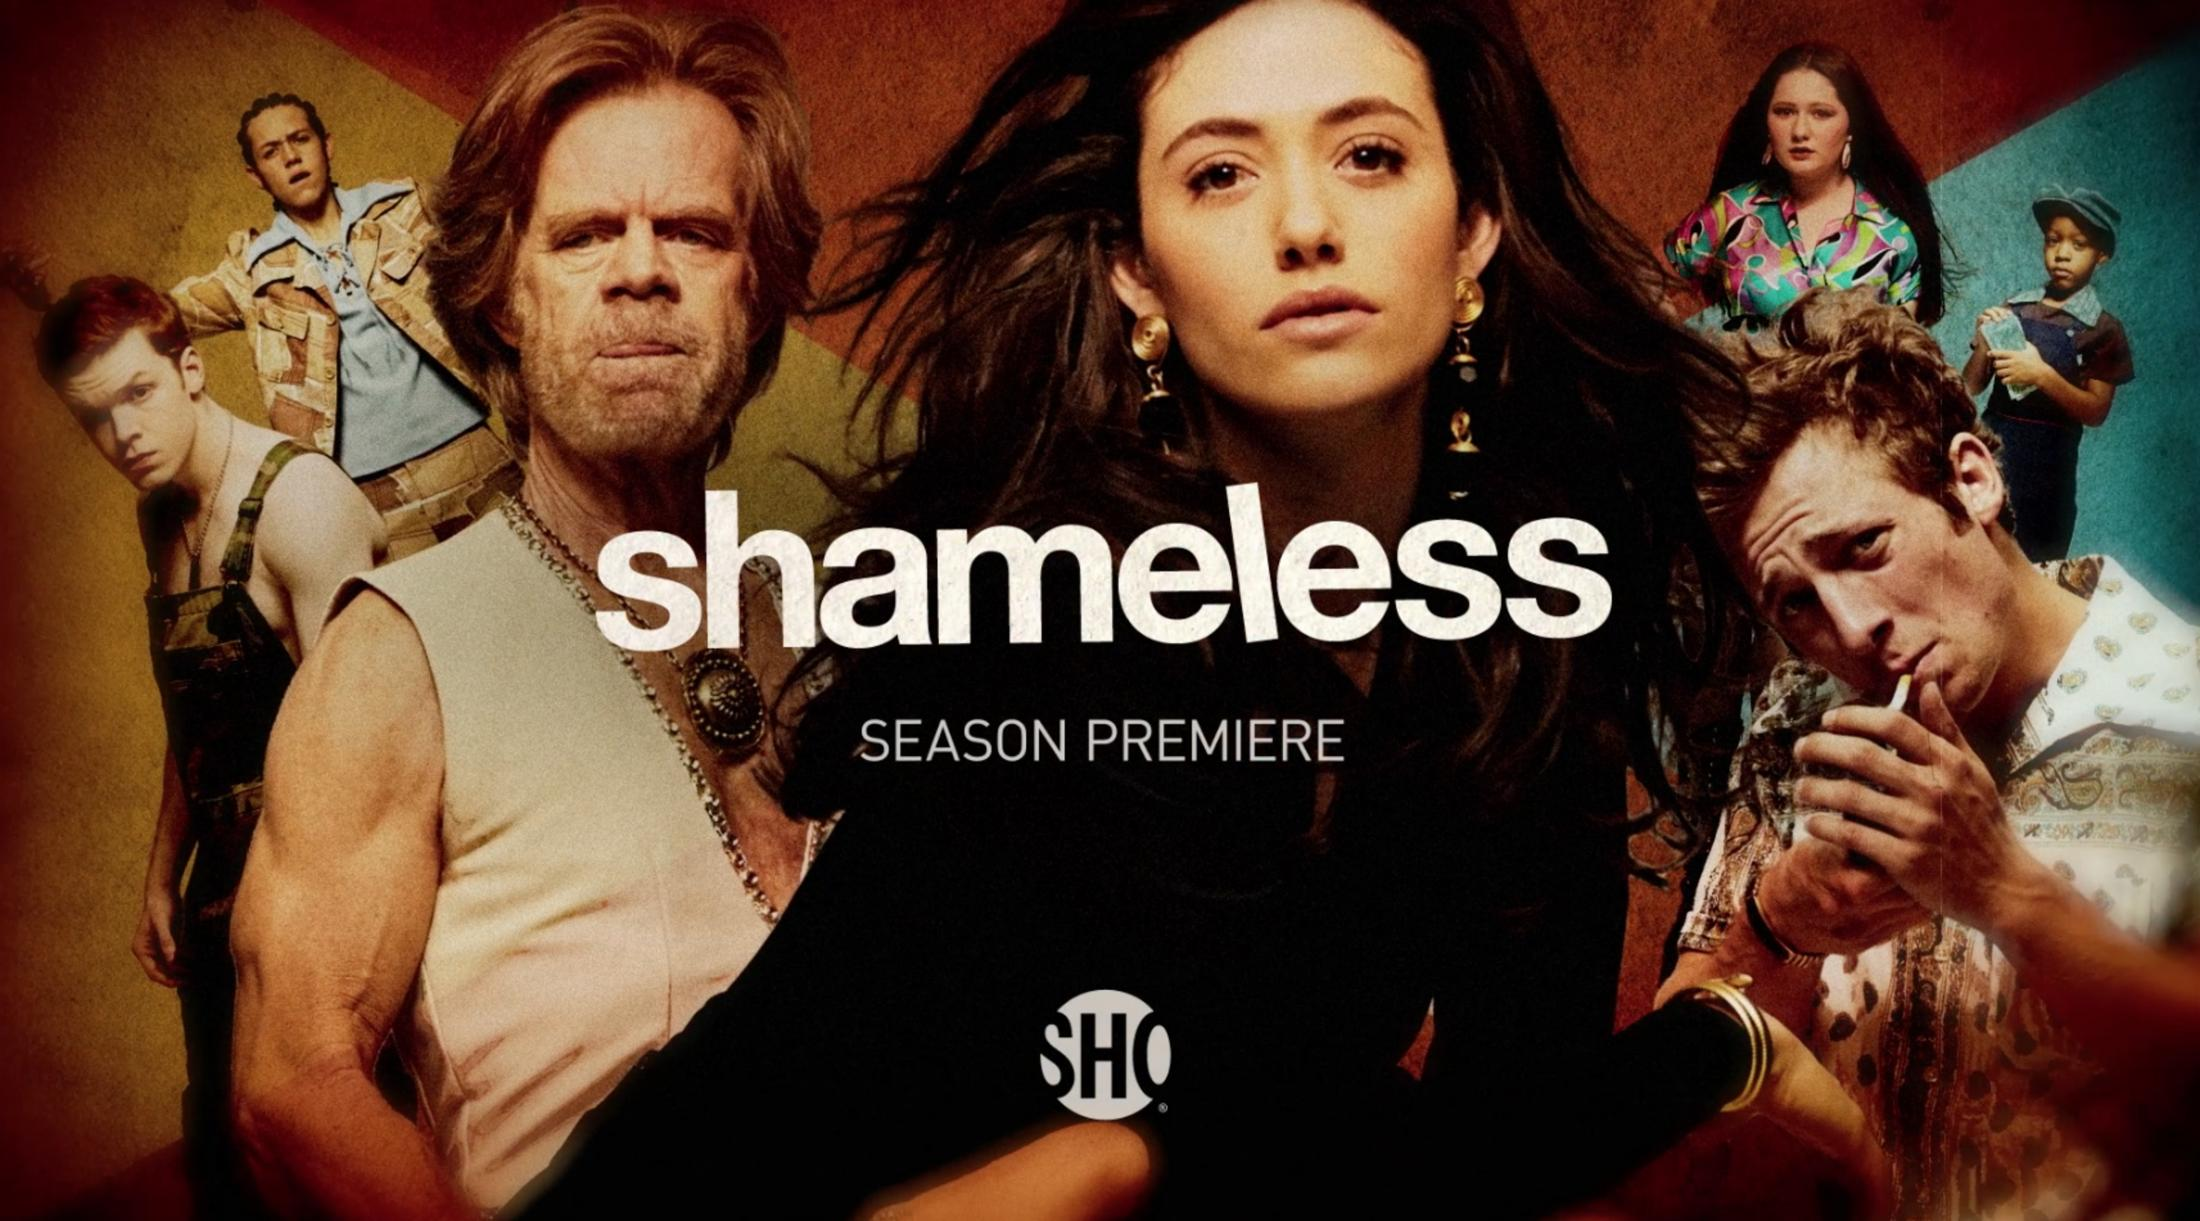 Image Media for Shameless